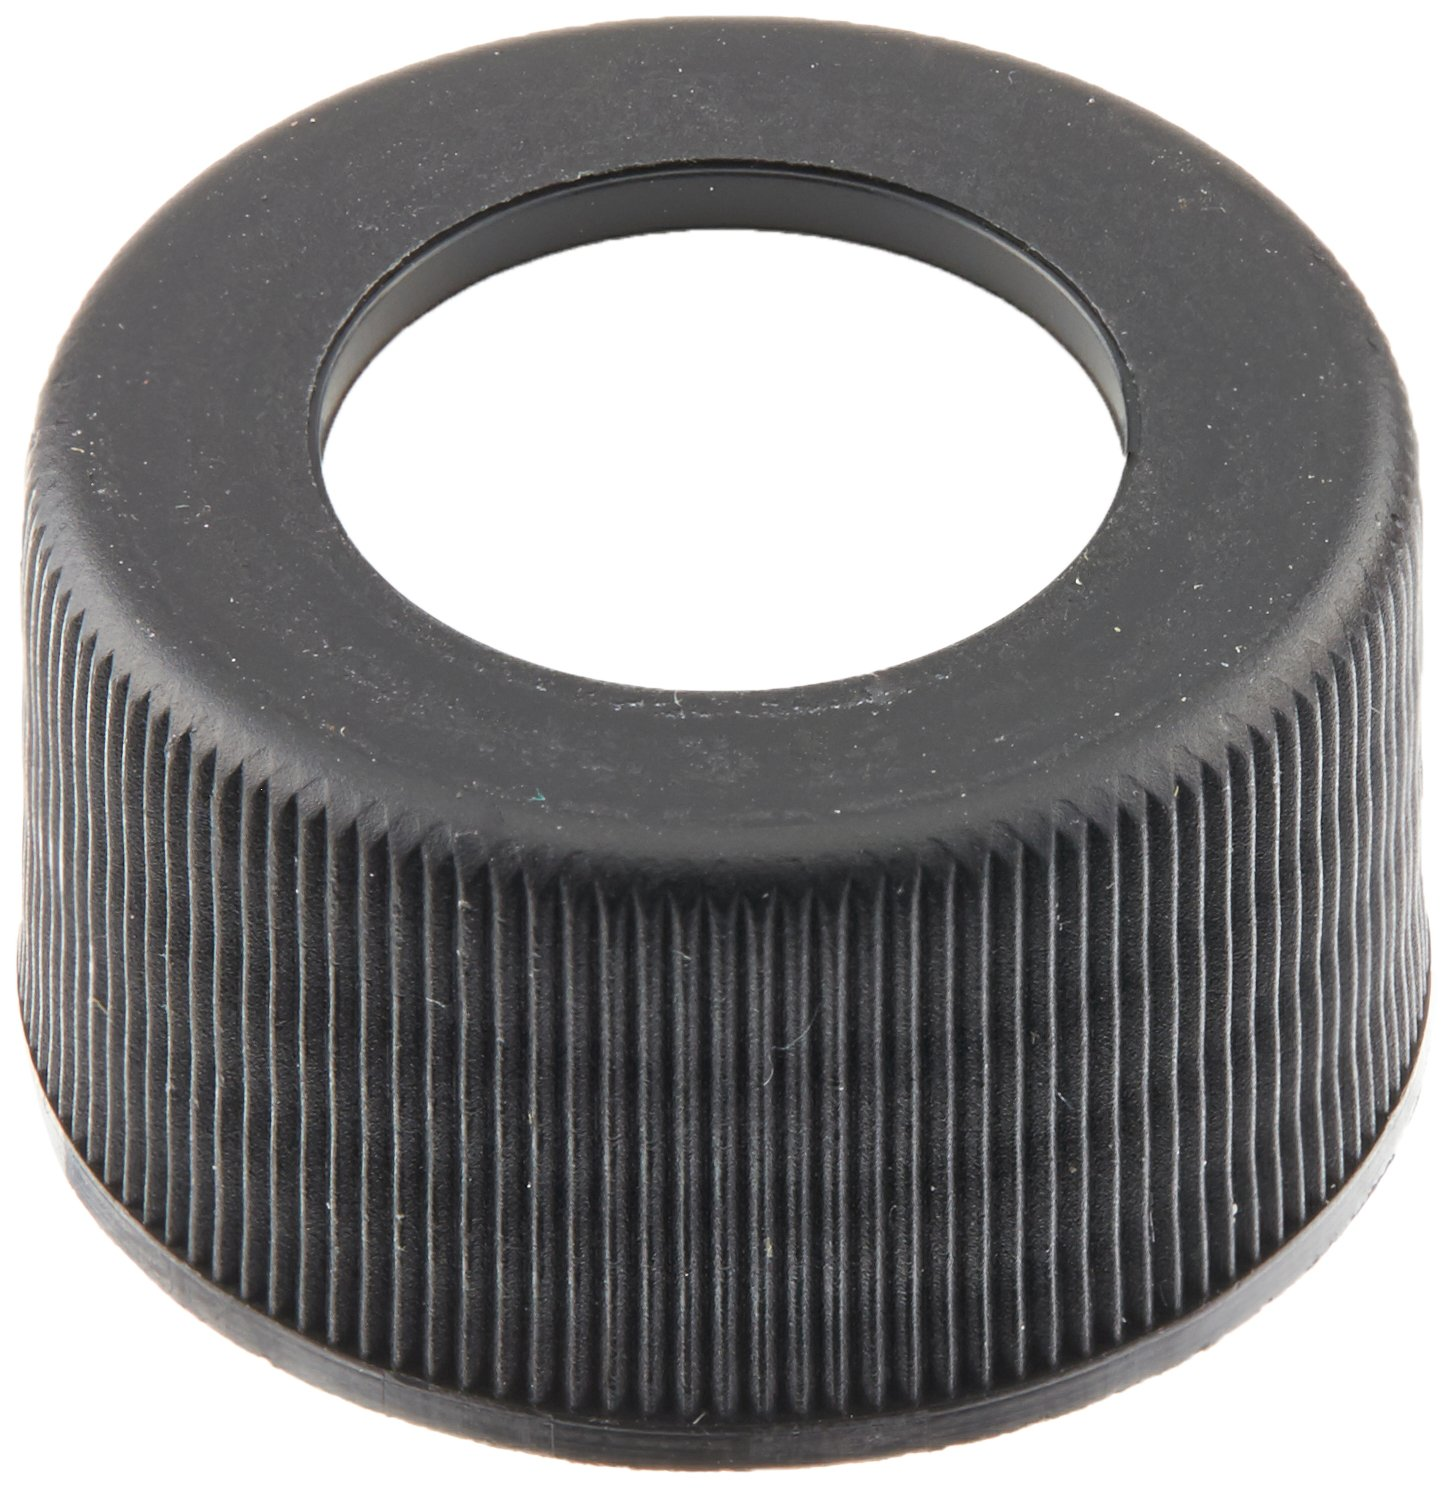 JG Finneran 34-375BLK Polypropylene Open Hole Closure with Fixed 0.060'' PTFE/Silicone Liner for Environmental VOA Vials , 24-414mm Cap Size, Black (Pack of 100)